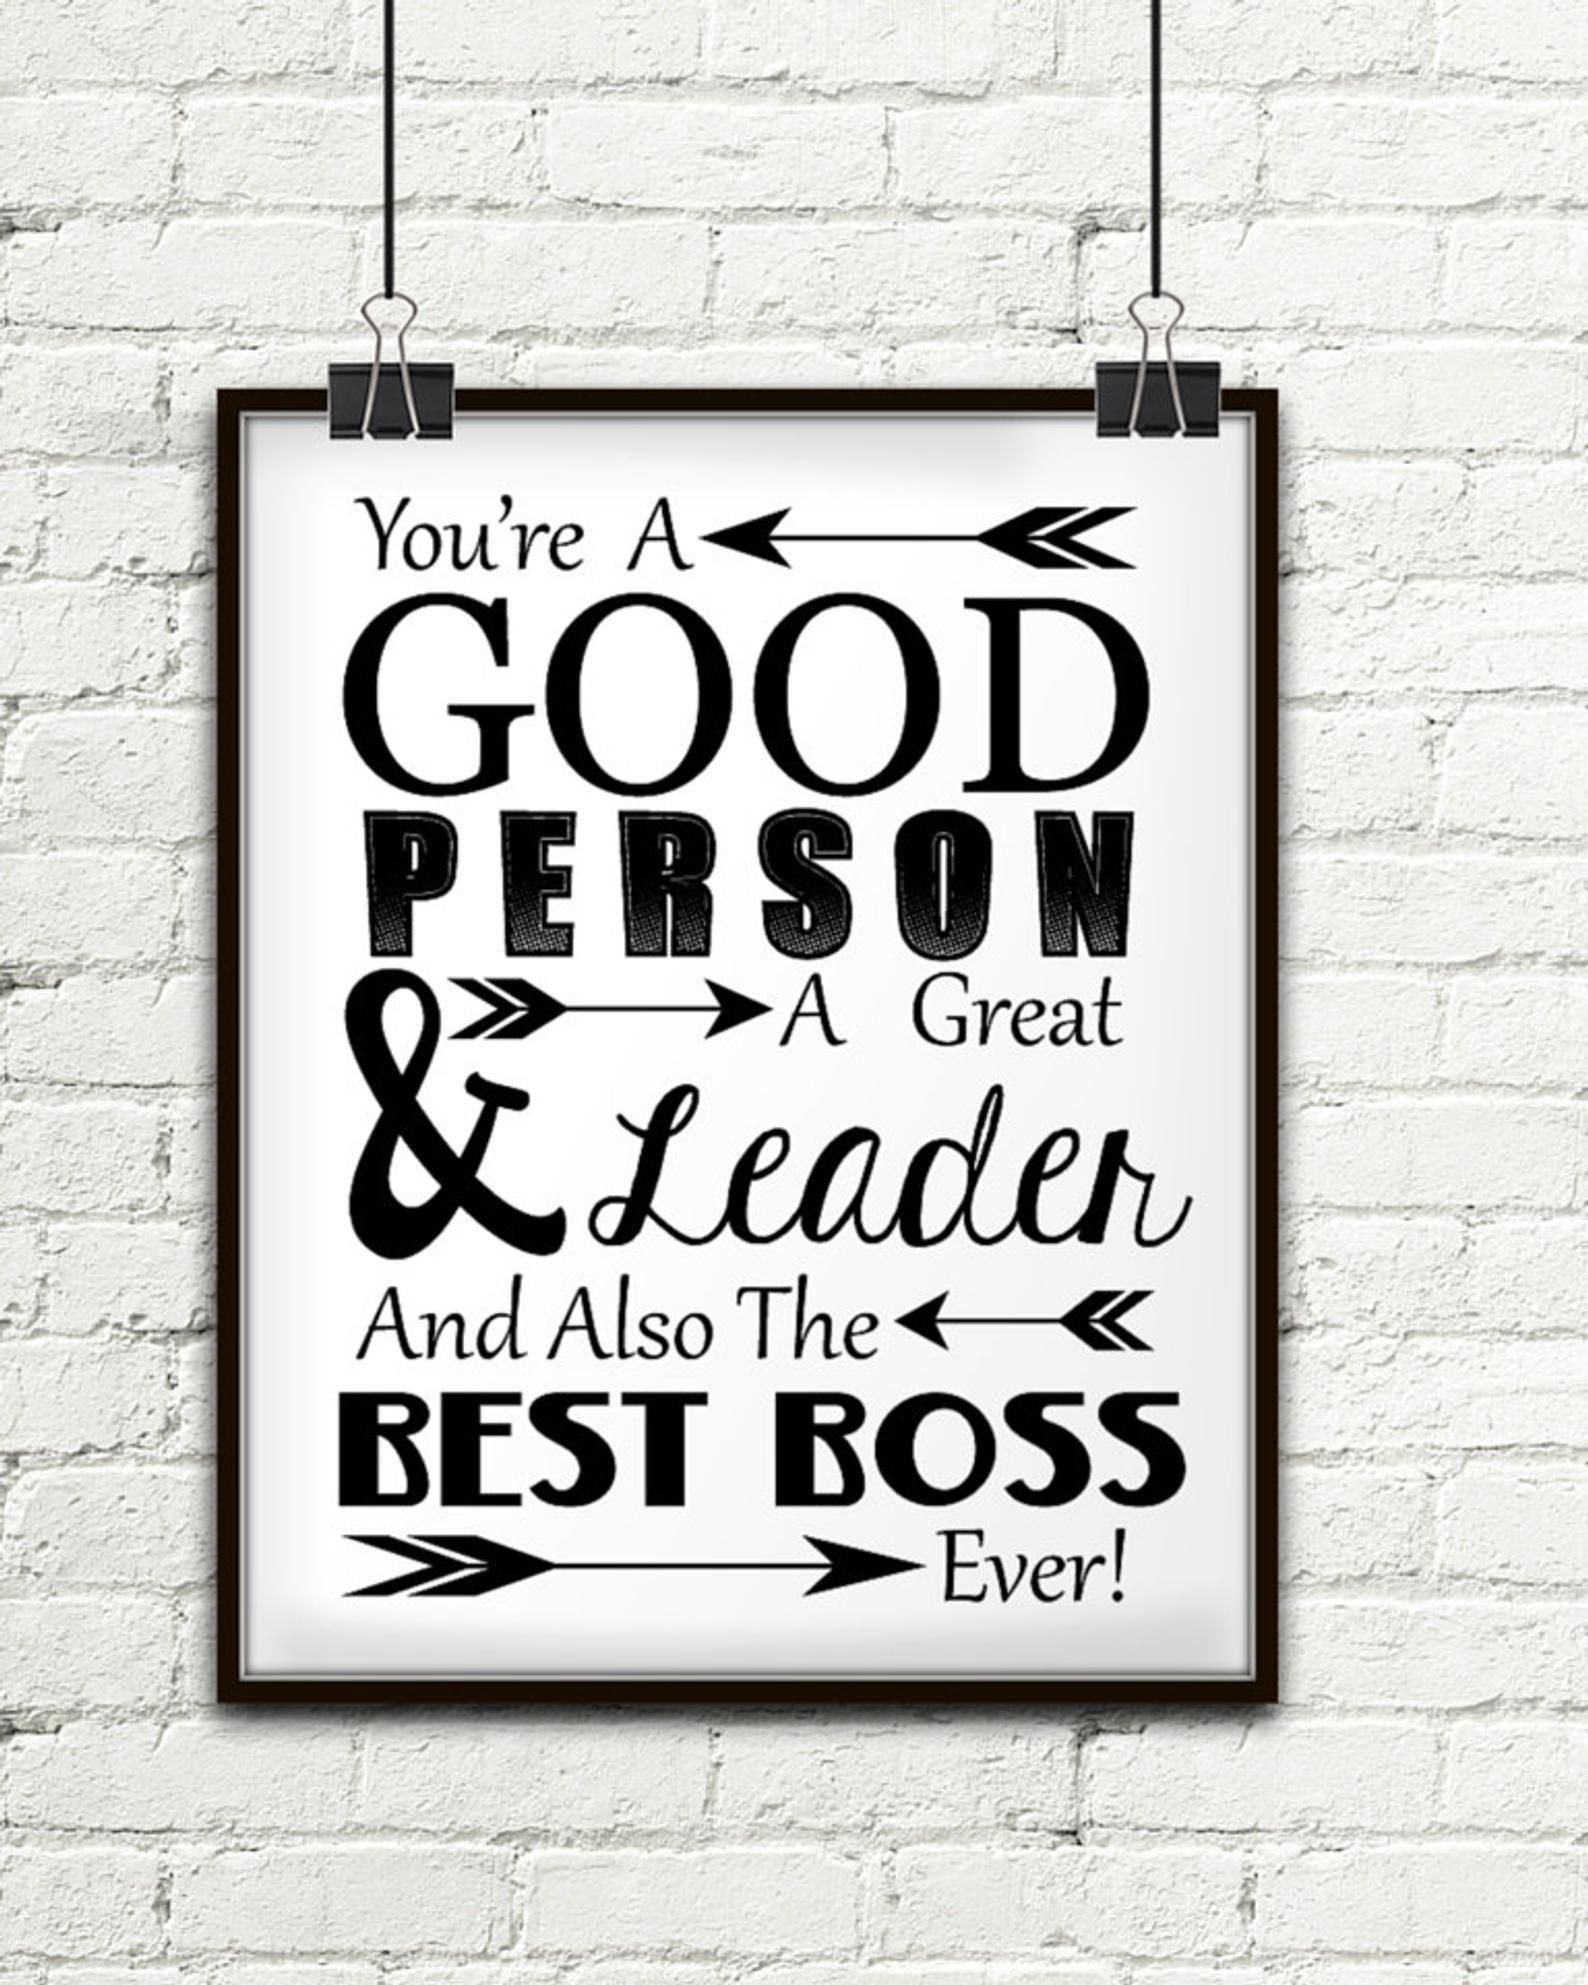 You Re A Good Person A Great Leader And Also The Best Boss Etsy In 2021 Gifts For Boss Gifts For Your Boss Best Boss Gifts